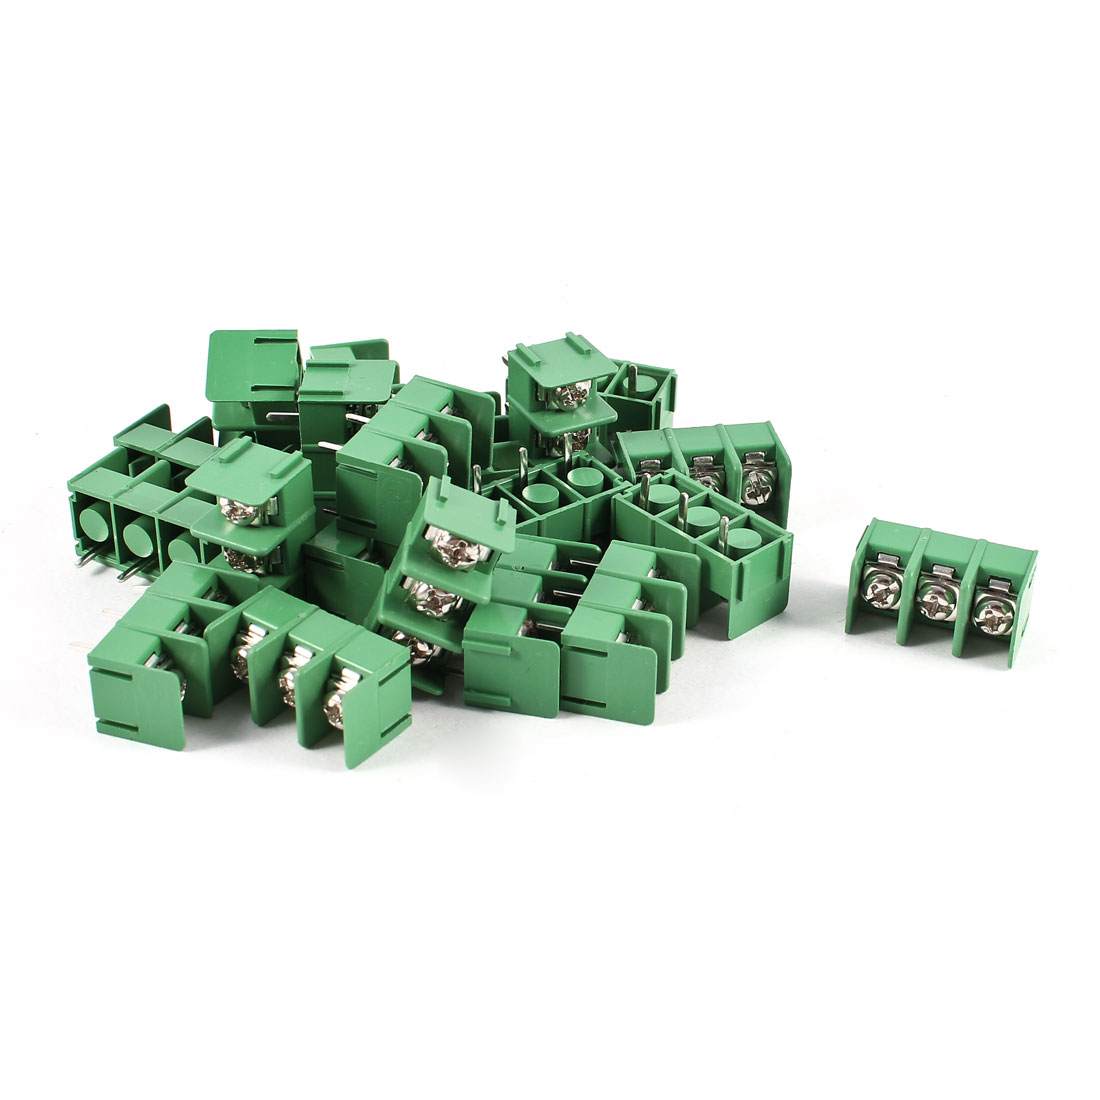 20 Pcs Green KF7.62-3P 3 Position 3Pin PCB Mount 7.62mm Pitch Screw Terminal Barrier Blocks 300V 20A